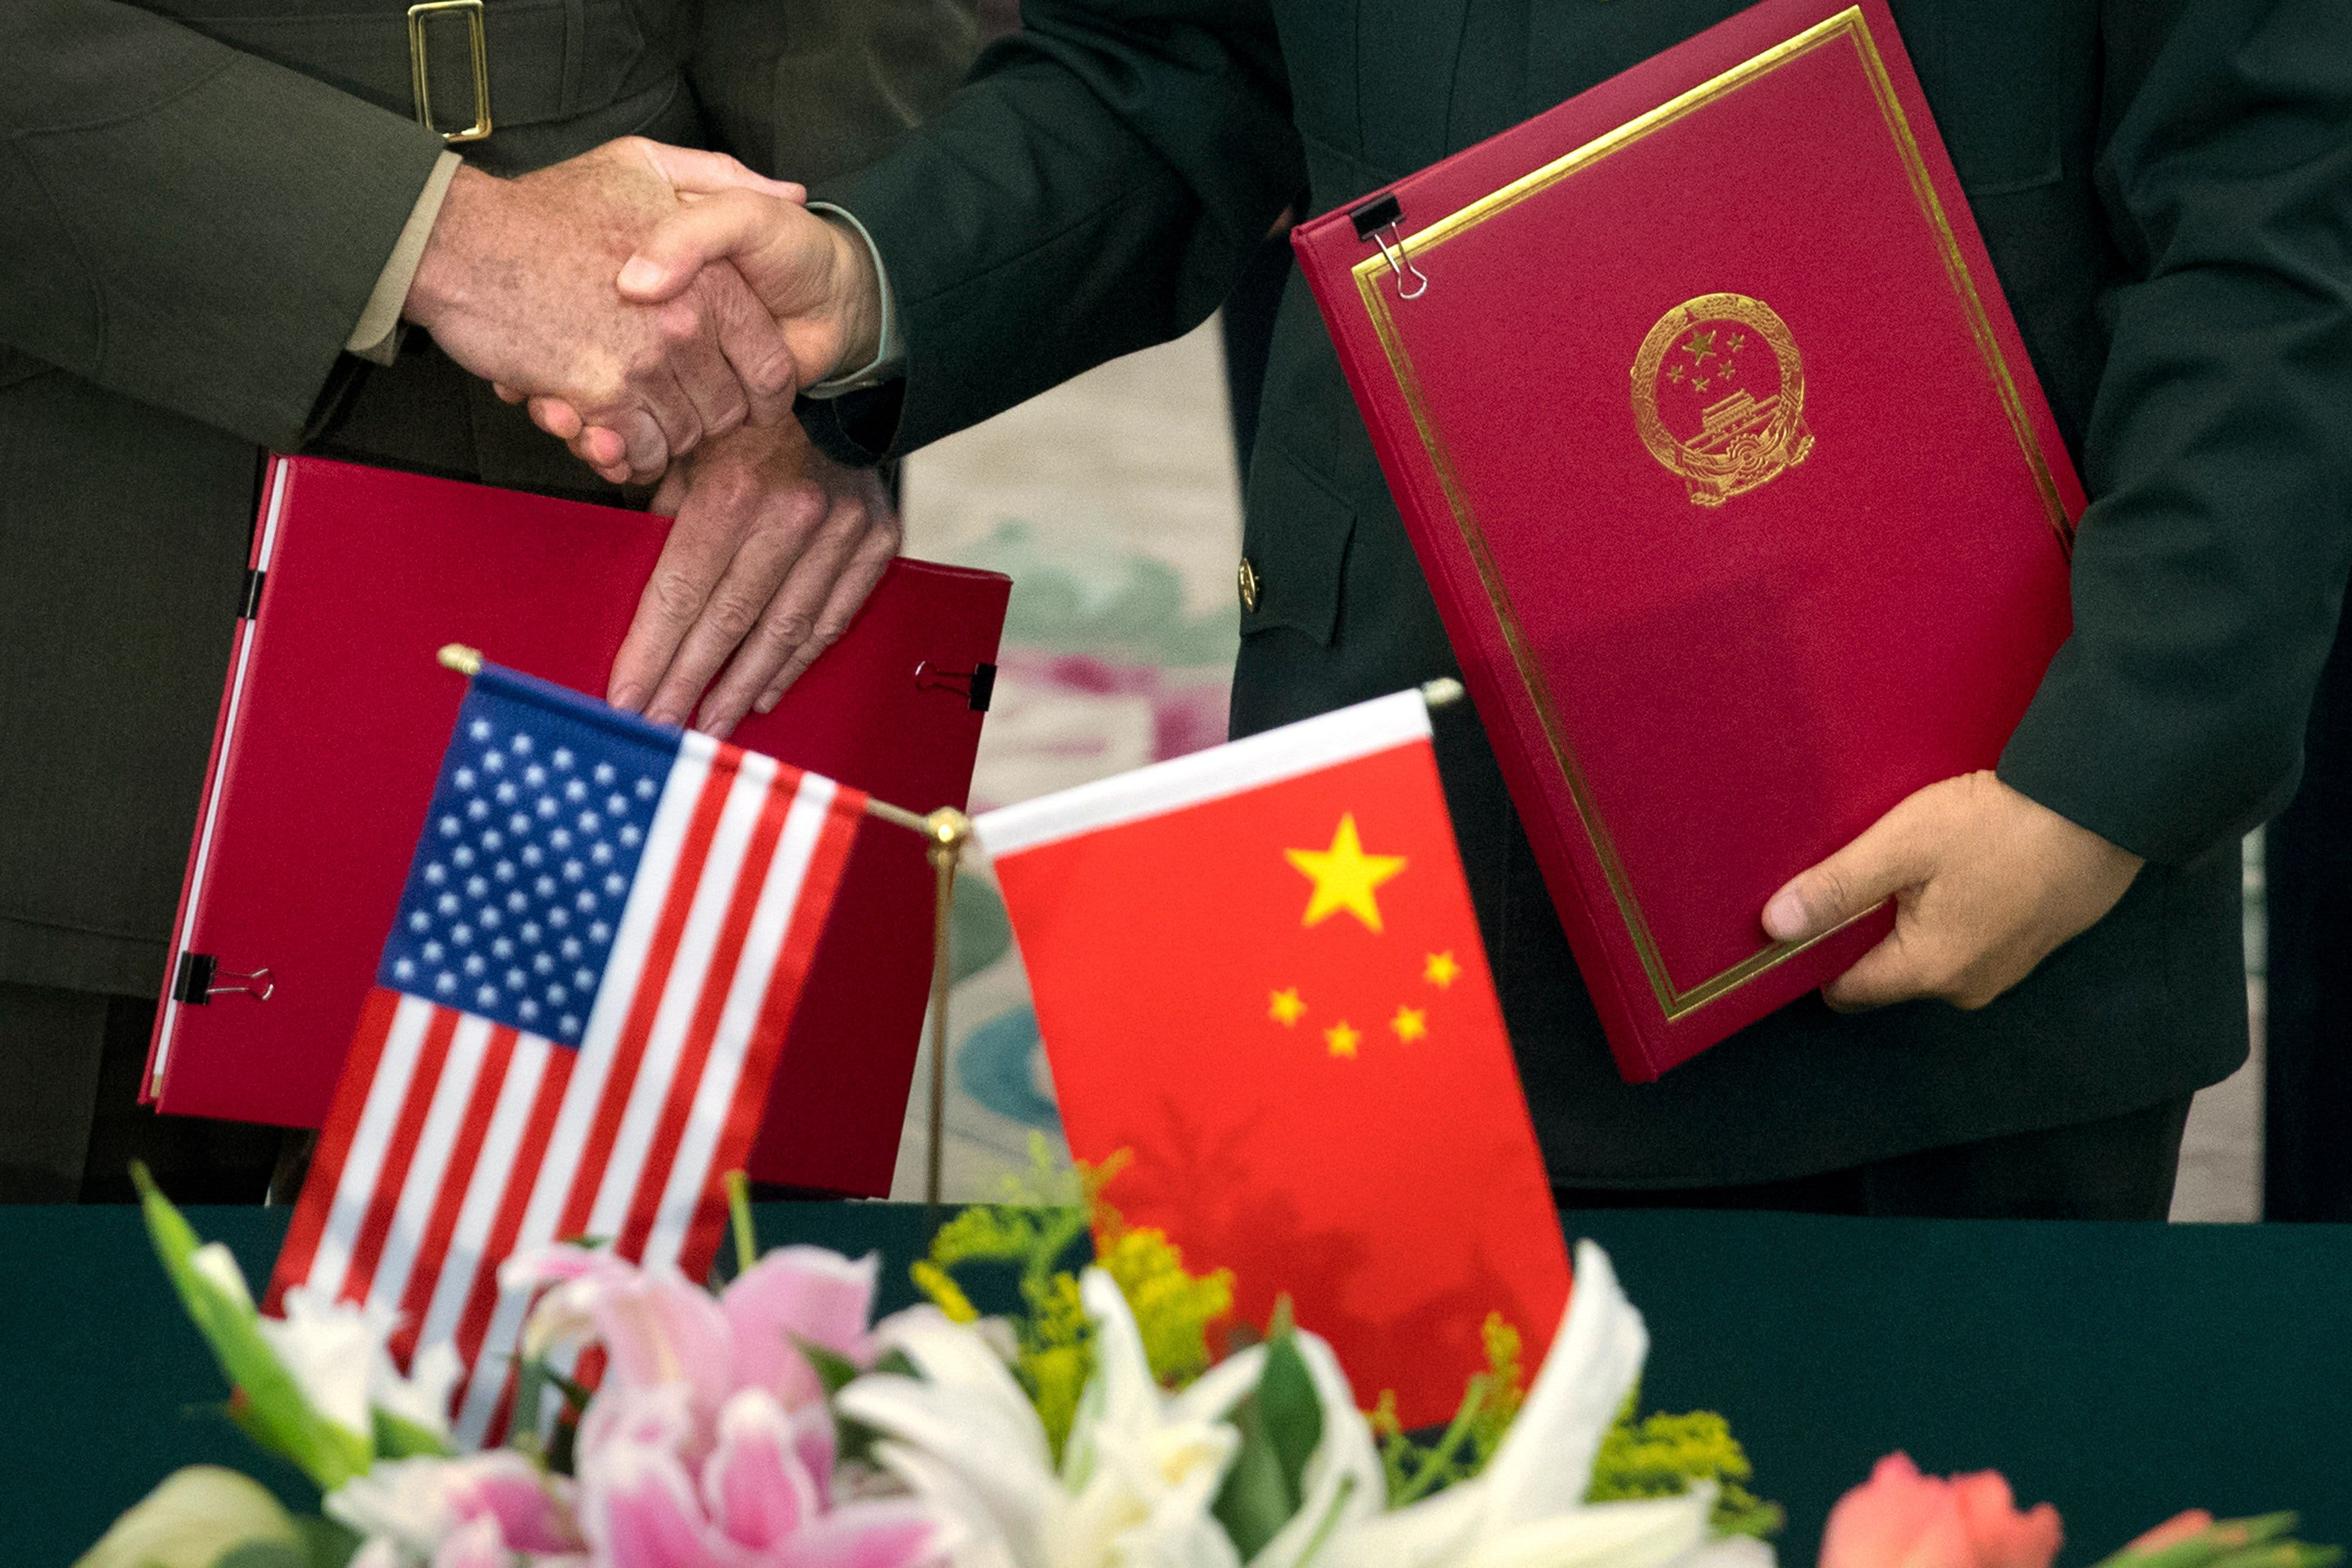 Forcing 'America First' on others will lead to 'America Alone:' Chinese state-run media